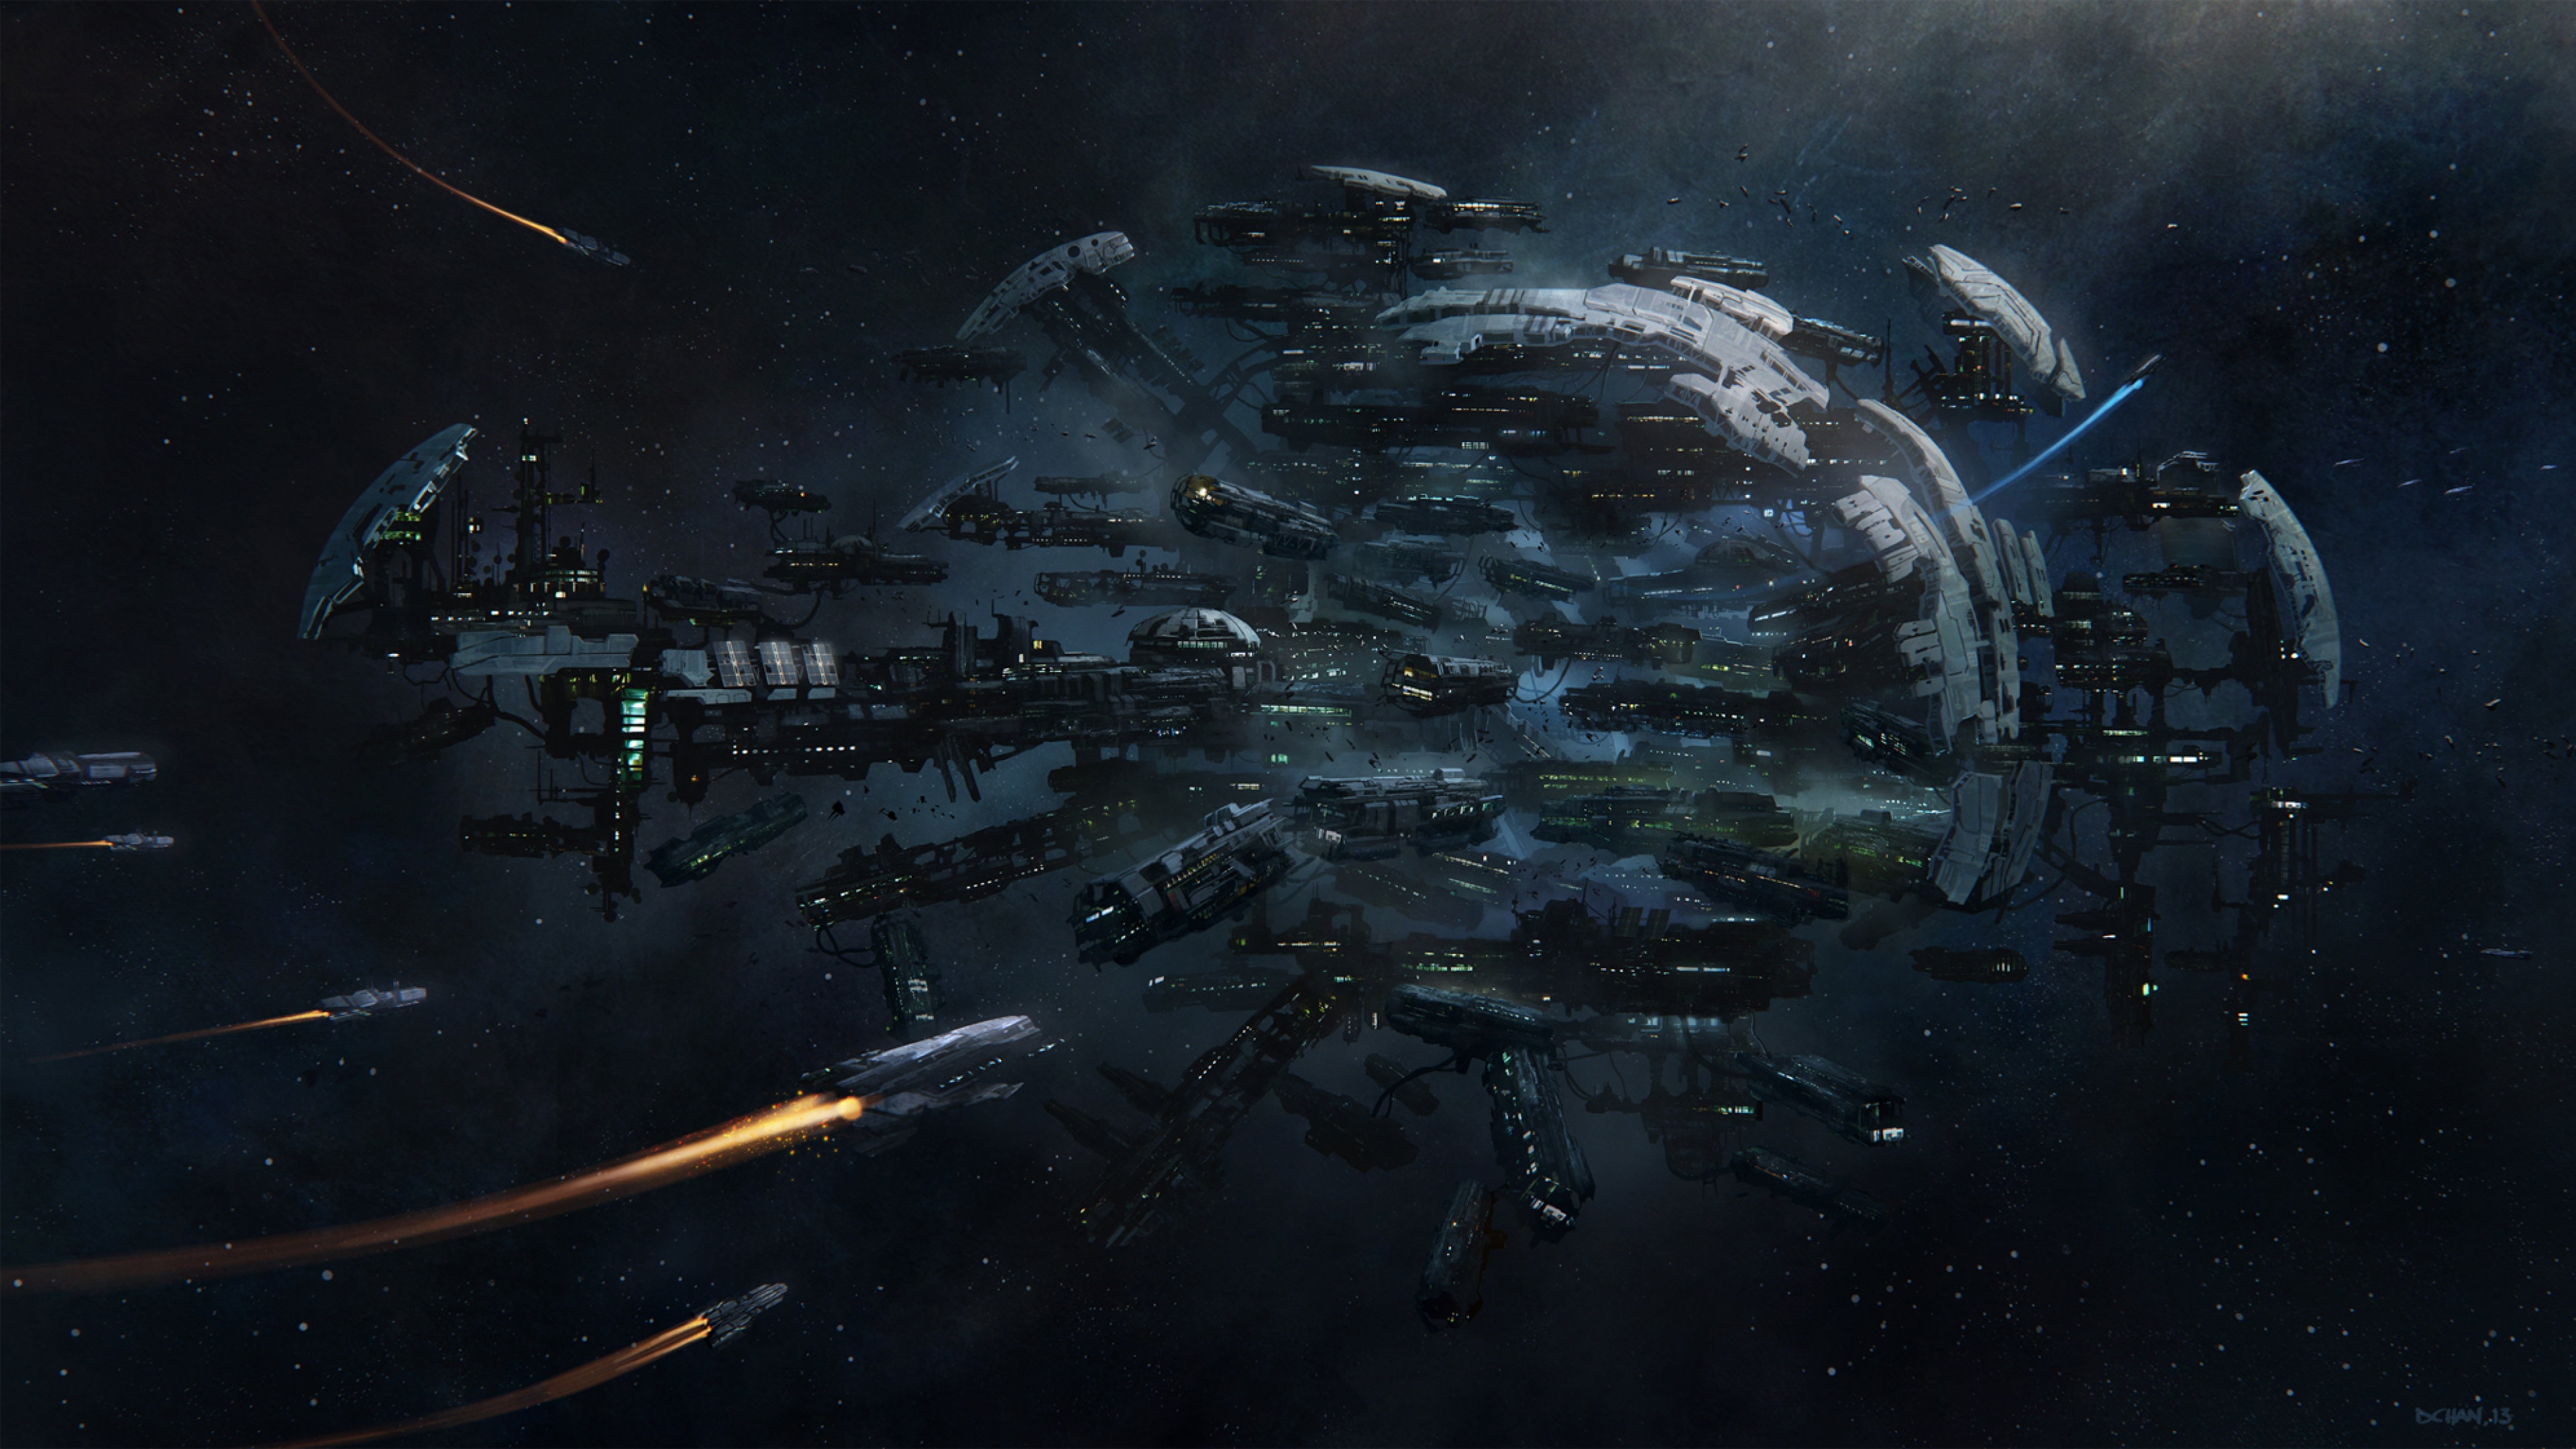 3840x2160 - Spaceship Wallpapers 25